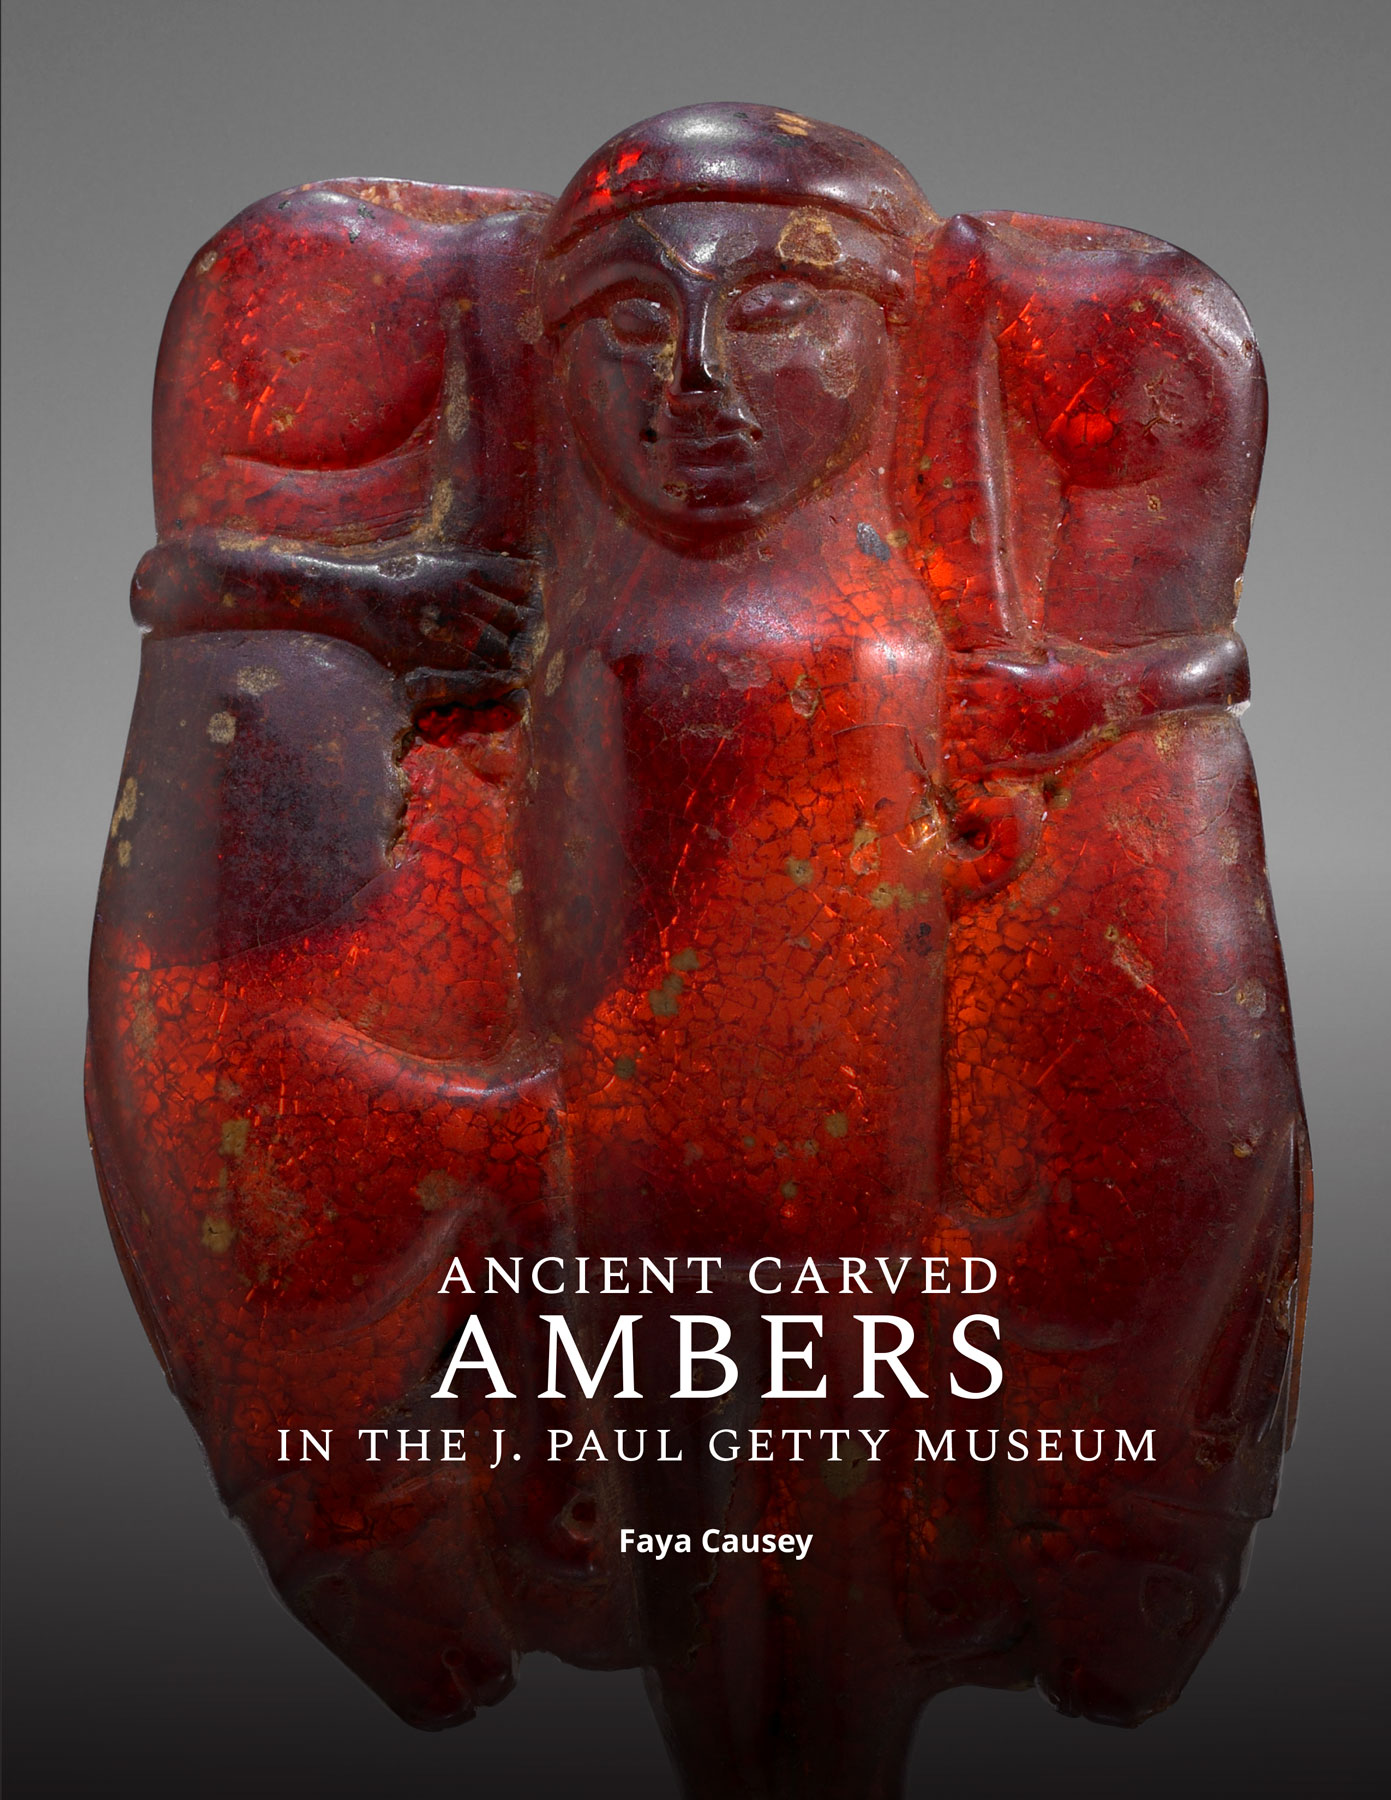 Amber Berger Nude pendant | ancient carved ambers in the j. paul getty museum